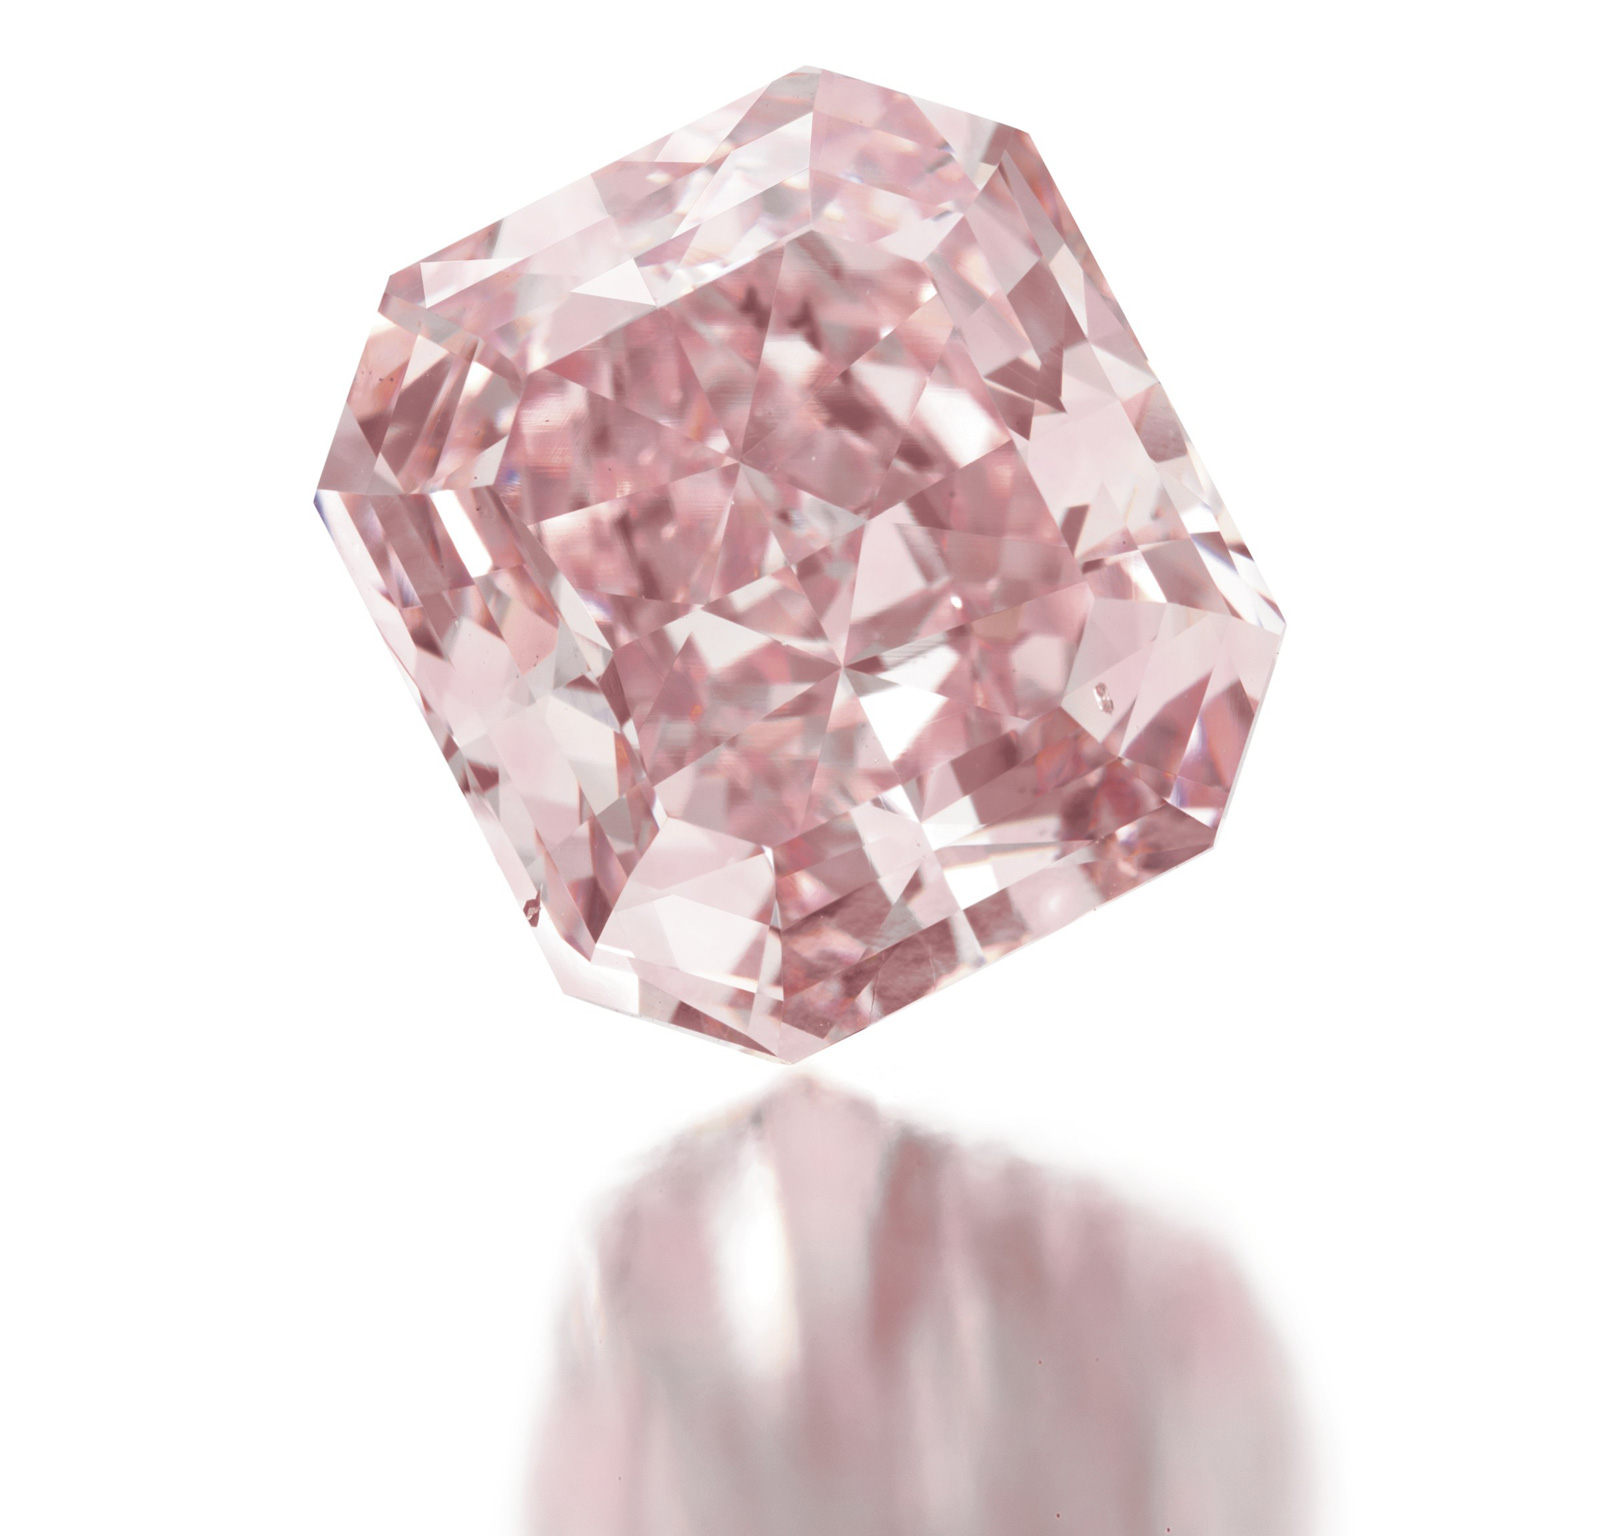 Fancy Vivid Purple-Pink Diamond of 6.89 Carats